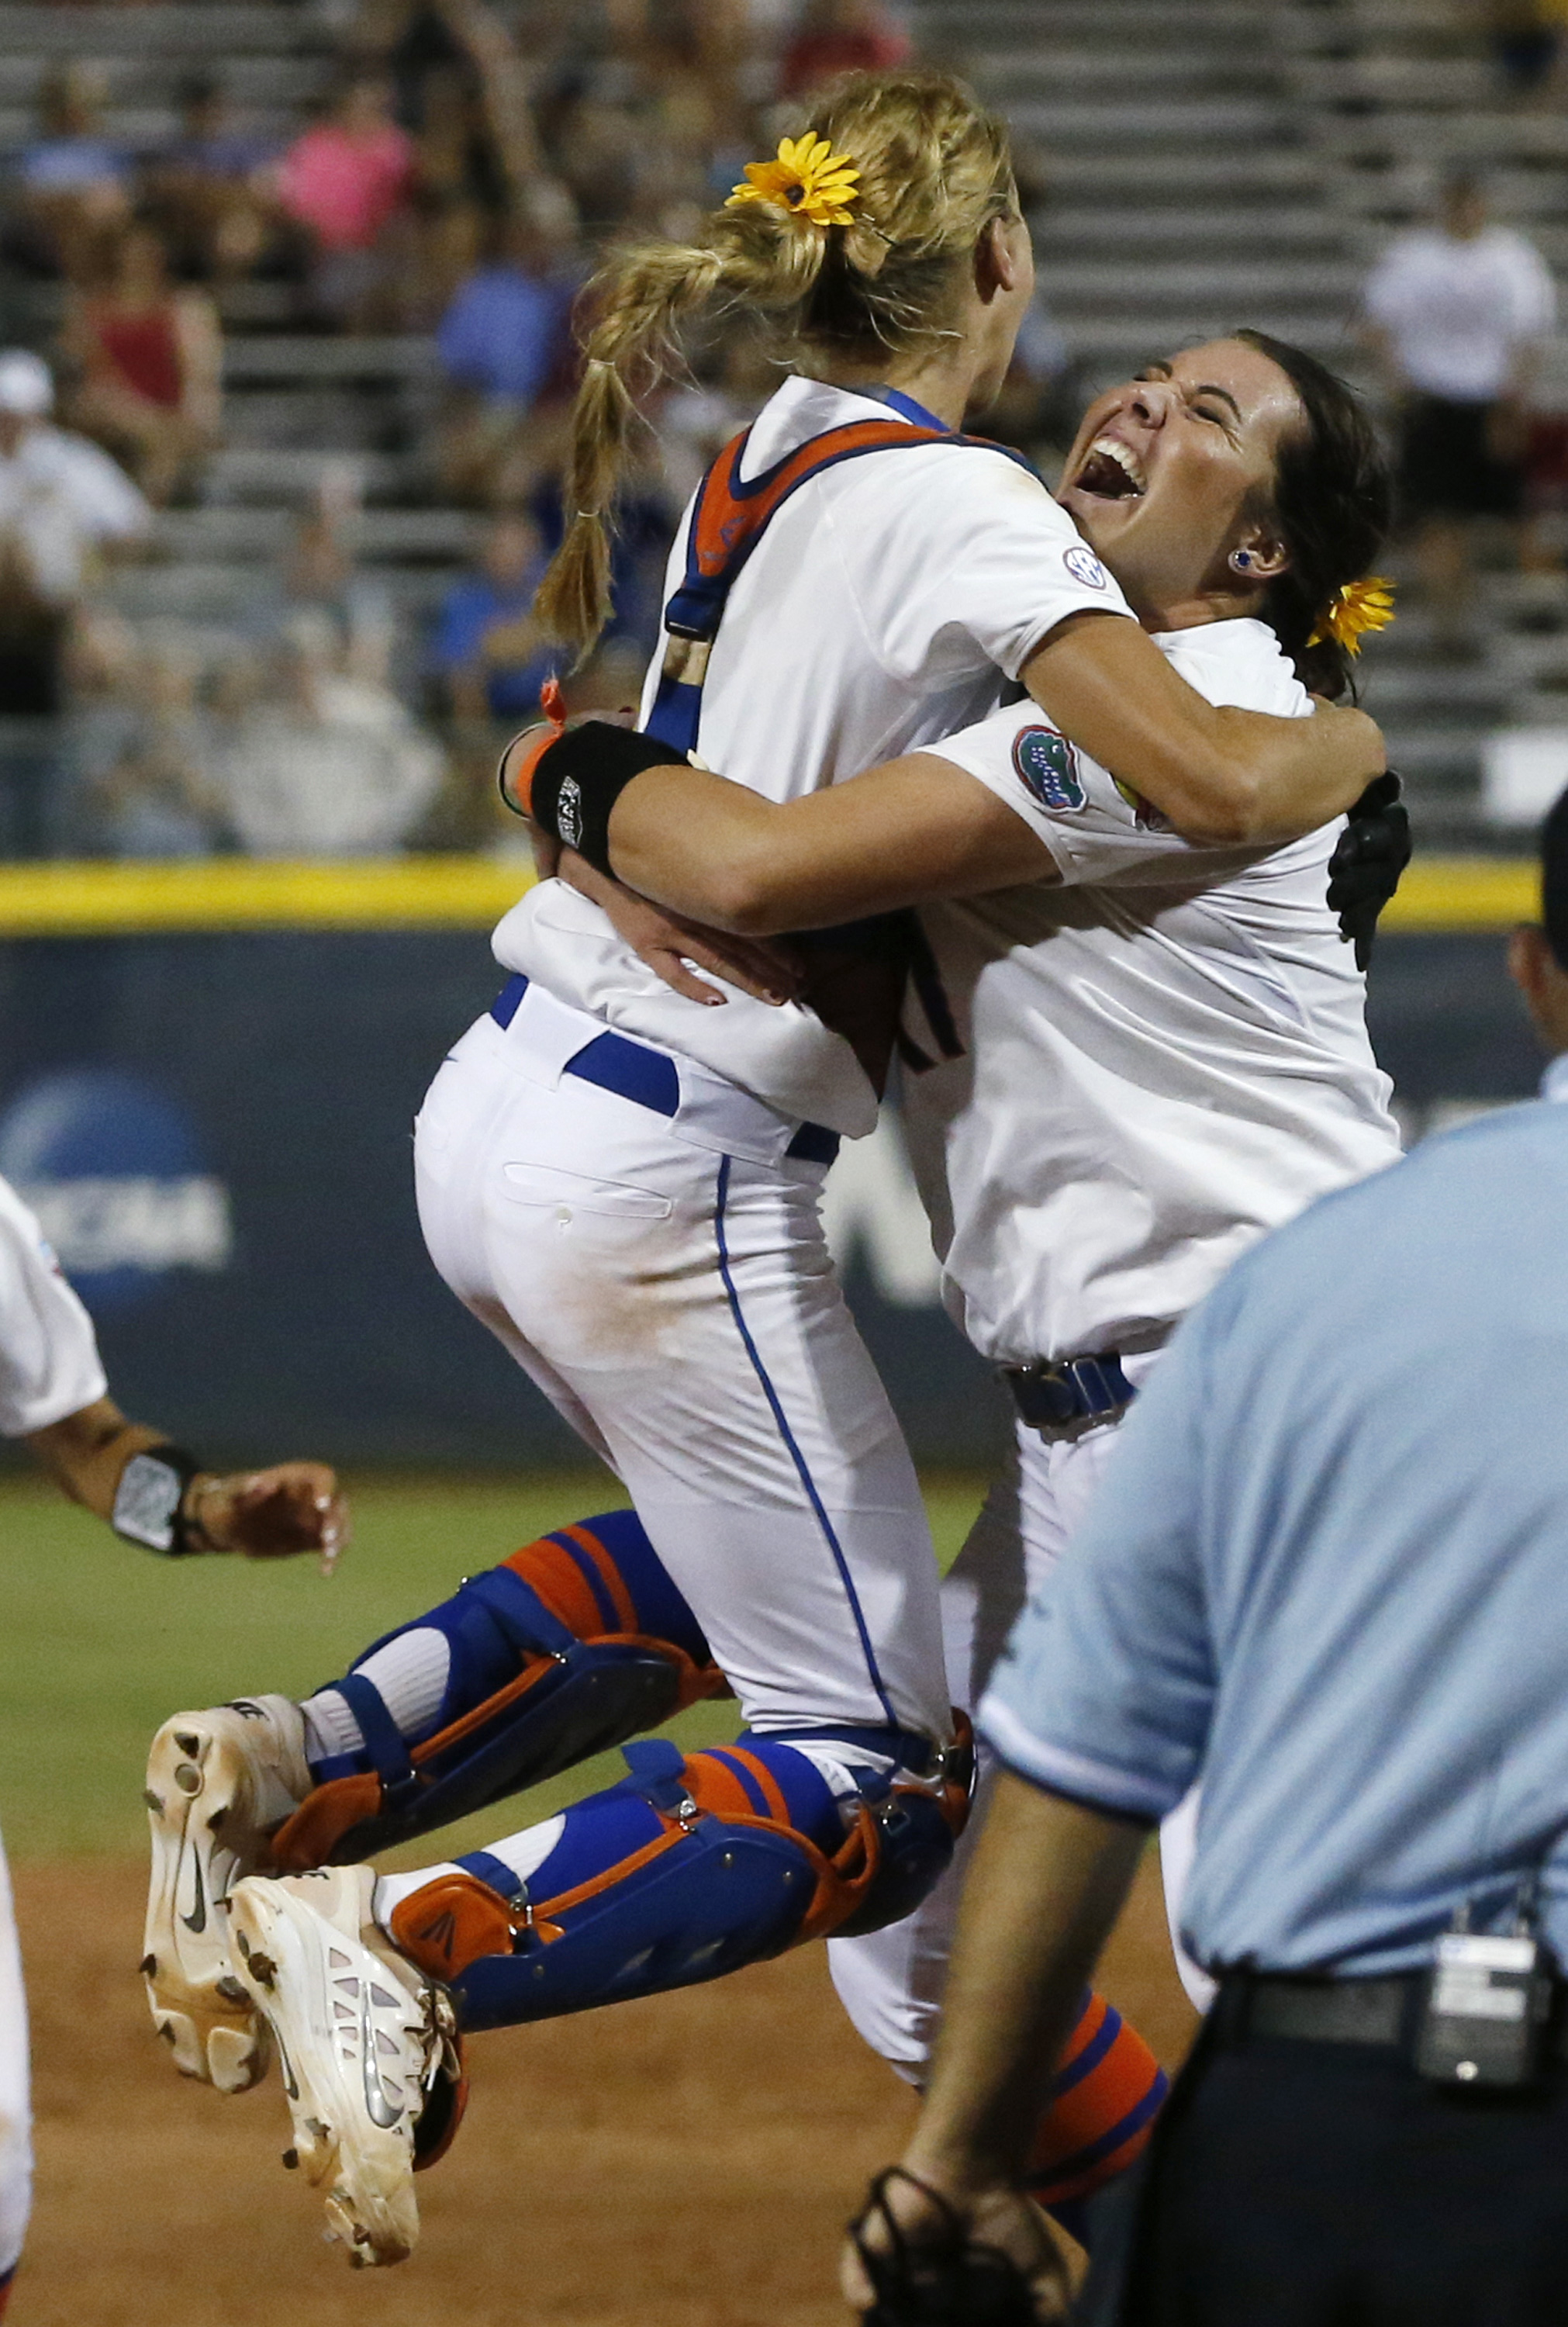 Florida pitcher Lauren Haeger, right, celebrates with catcher Aubree Munro at the end of the final game against Michigan in the NCAA softball Women's College World Series, Wednesday, June 3, 2015, in Oklahoma City. Florida won 4-1. (AP Photo/Sue Ogrocki)